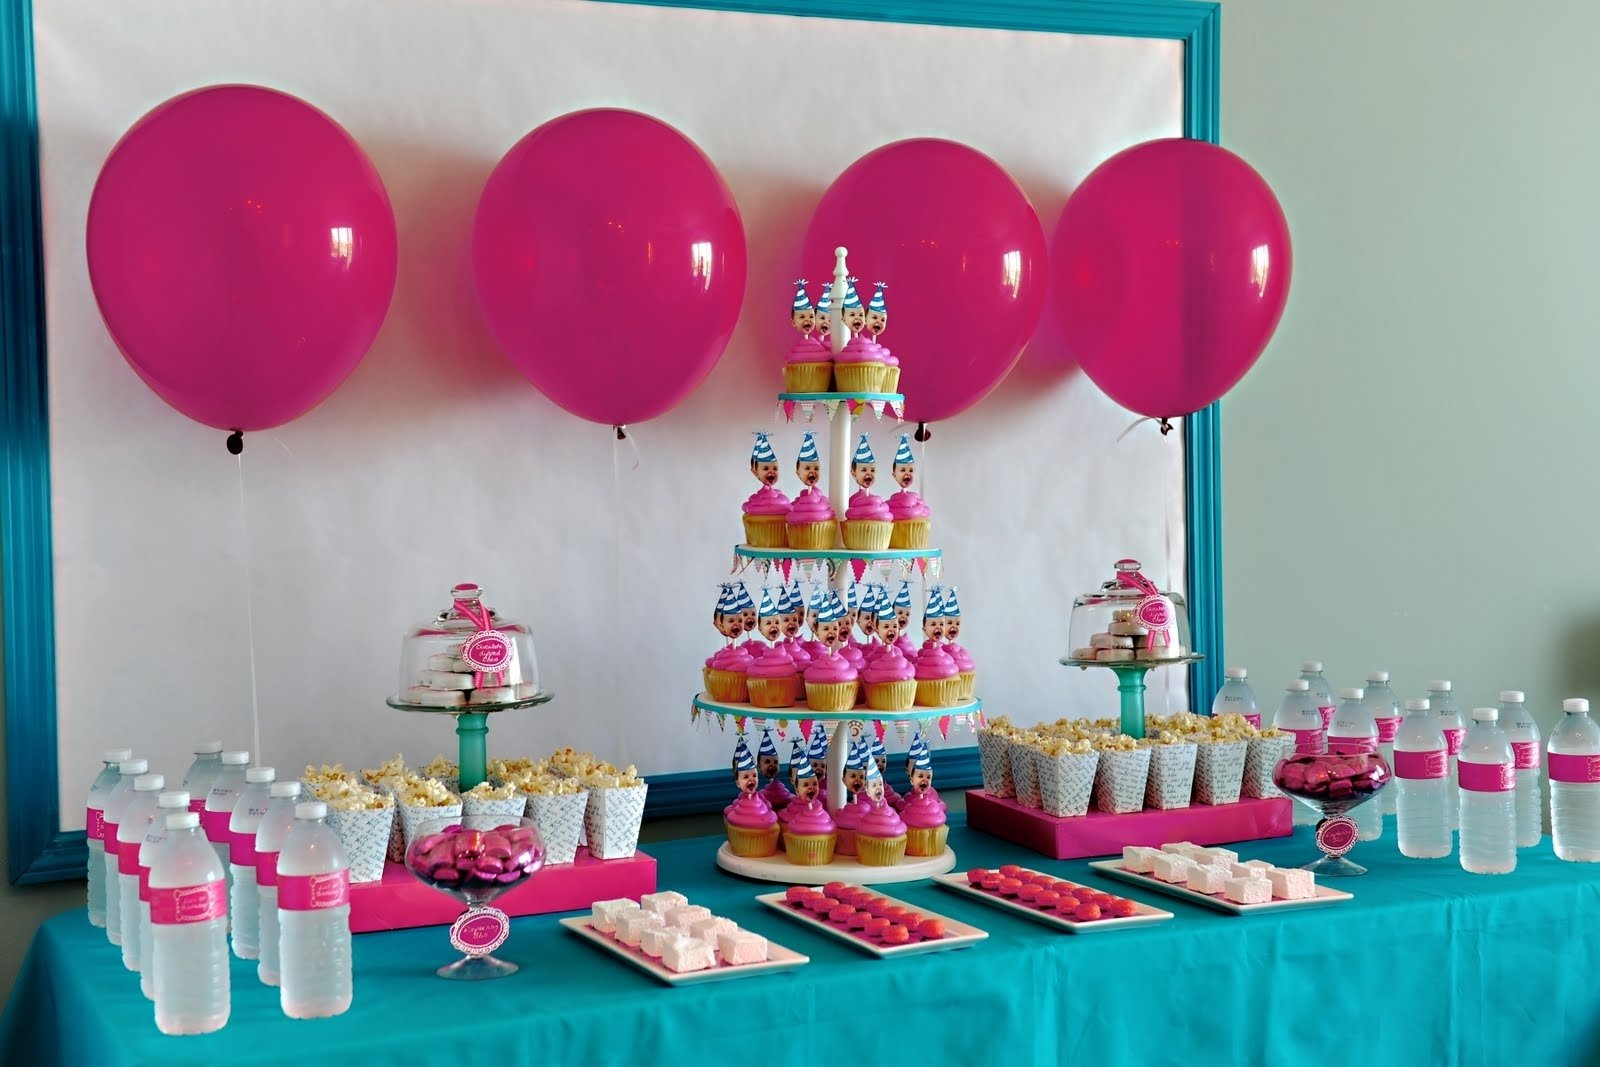 10 Attractive Party Ideas For A 1 Year Old Themes Birthday Menu